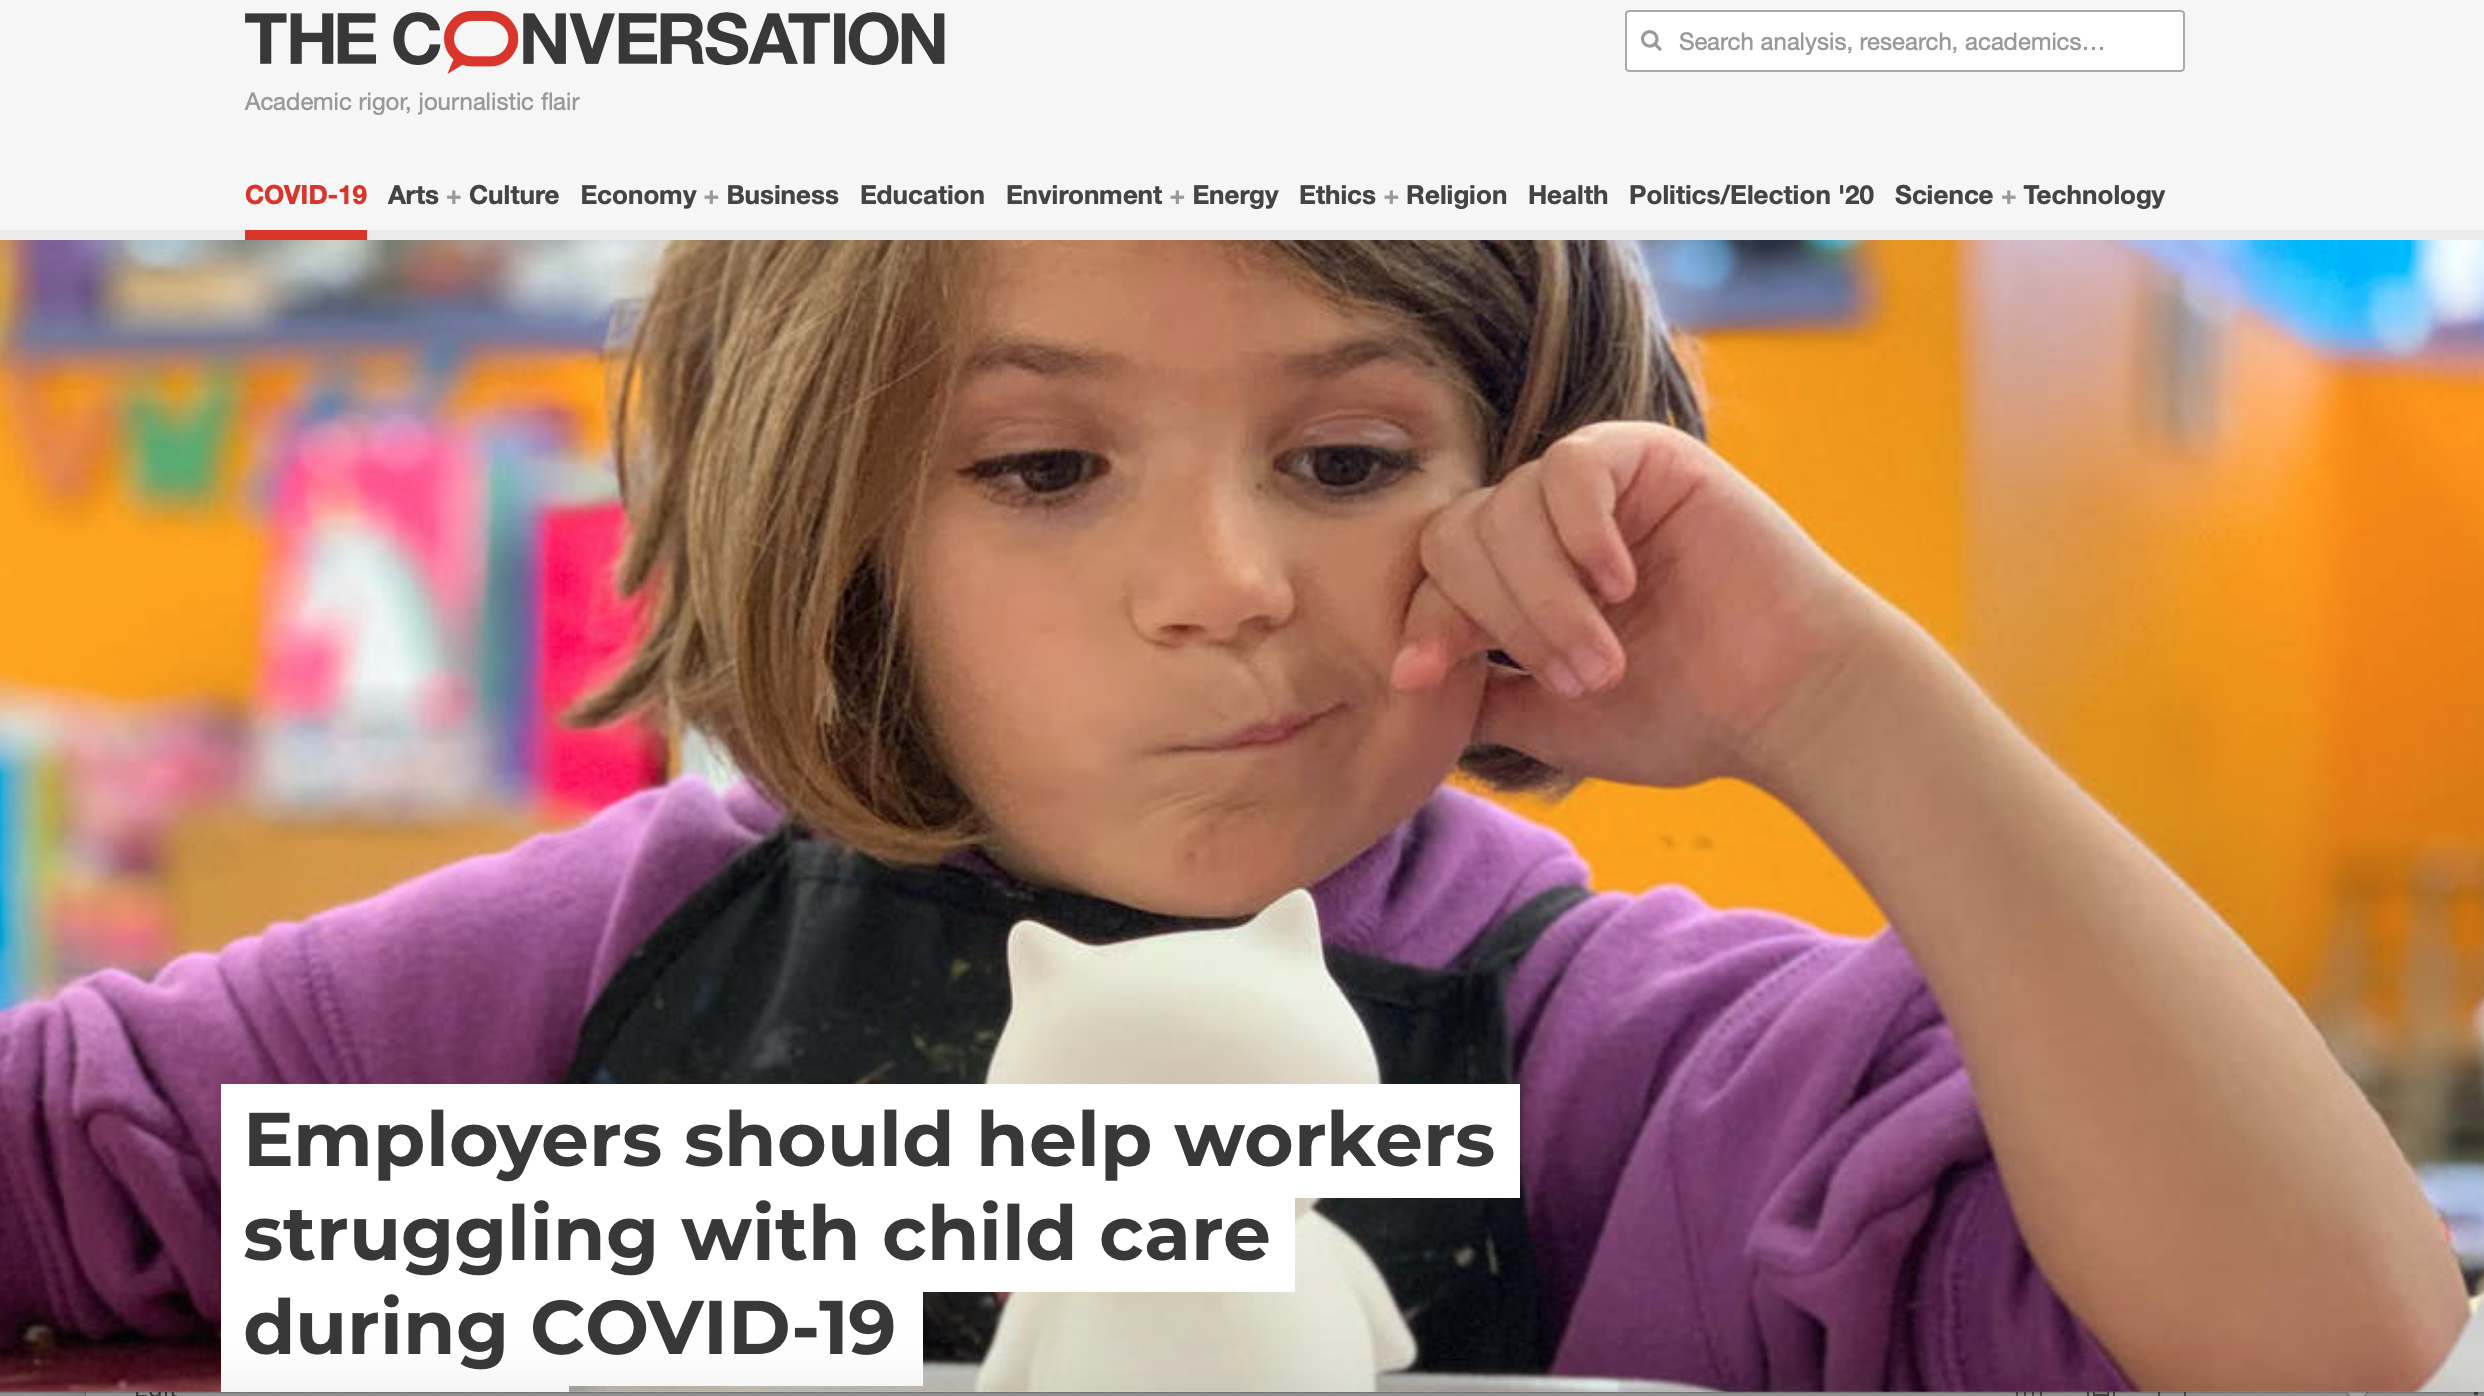 Employers should help workers struggling with child care during COVID-19